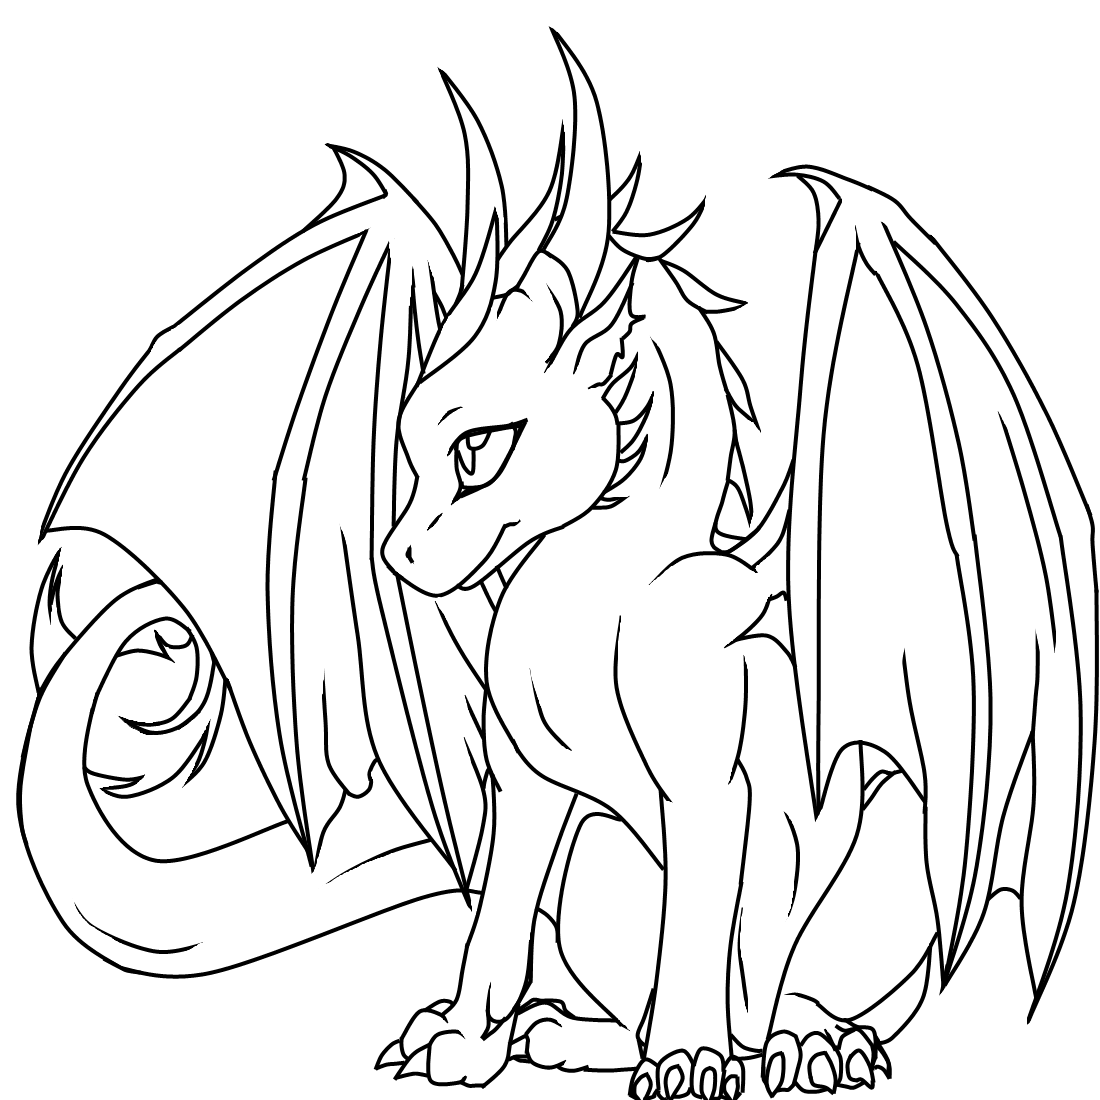 downloads the latest coloring pages dragons worksheets pictures and images for free coloring - Dragon Coloring Books